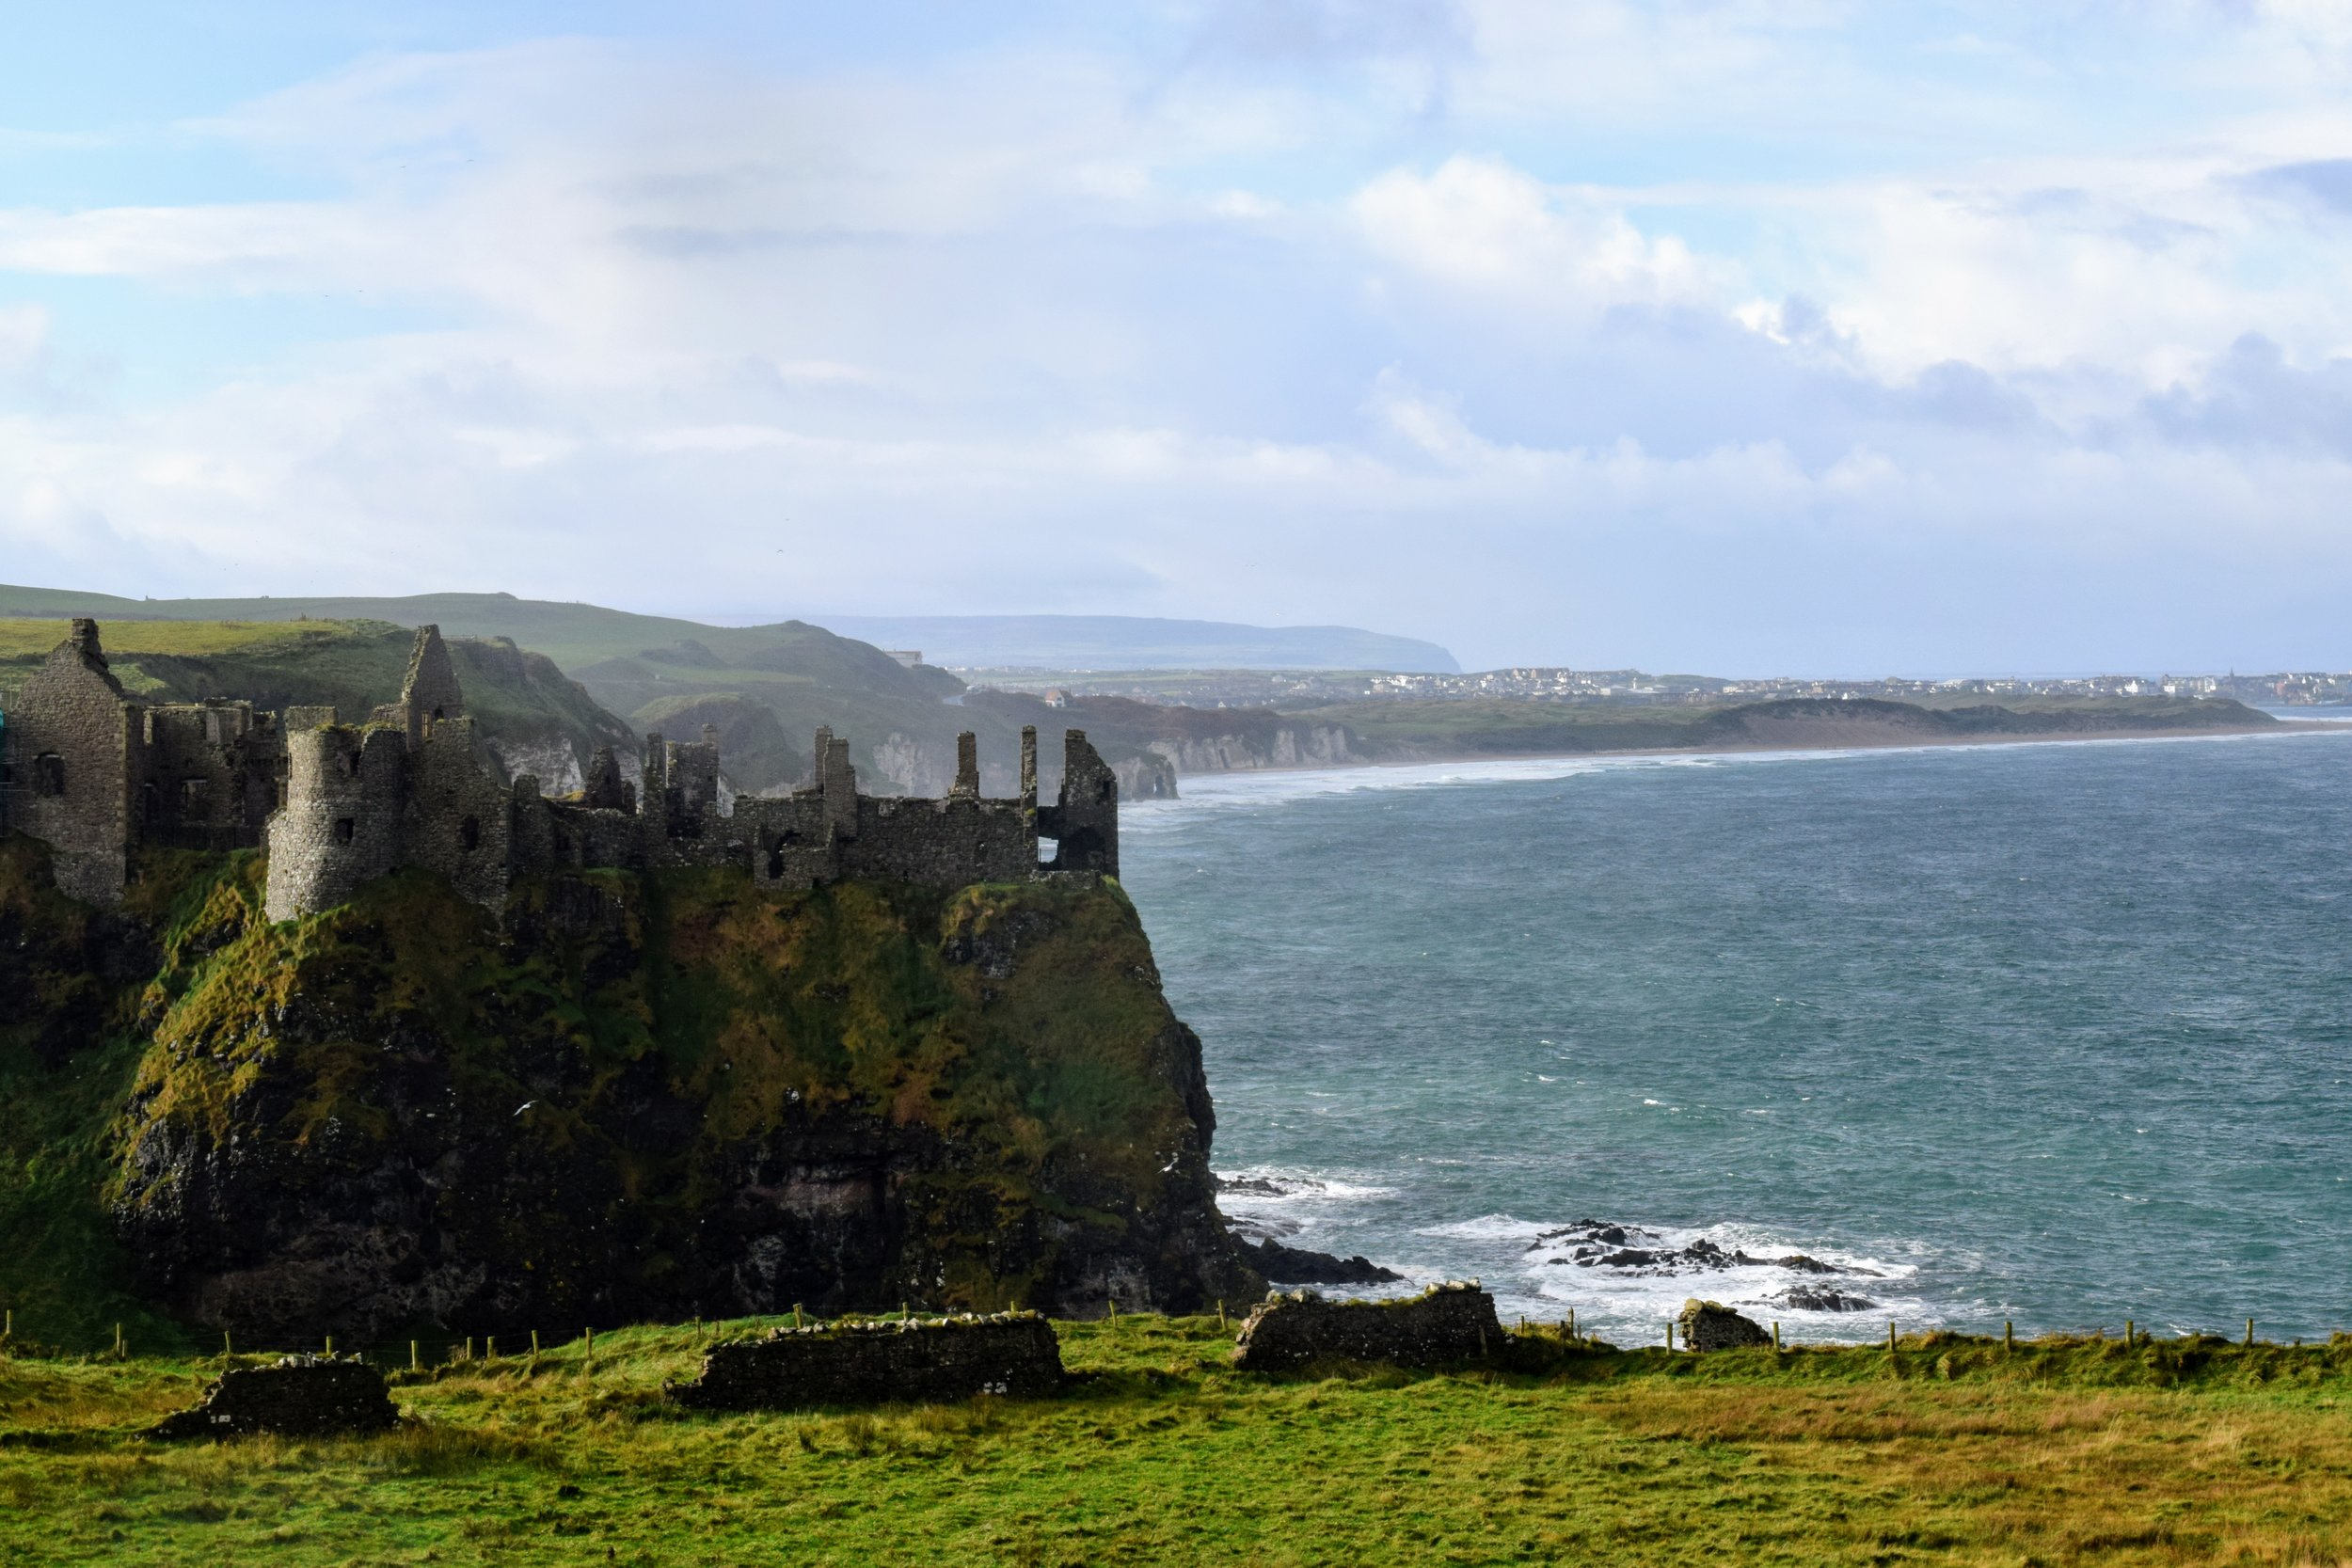 Dunluce Castle & the Antrim Coast (Nikon D3300, 50mm, f/16, 1/160 sec, ISO 400)